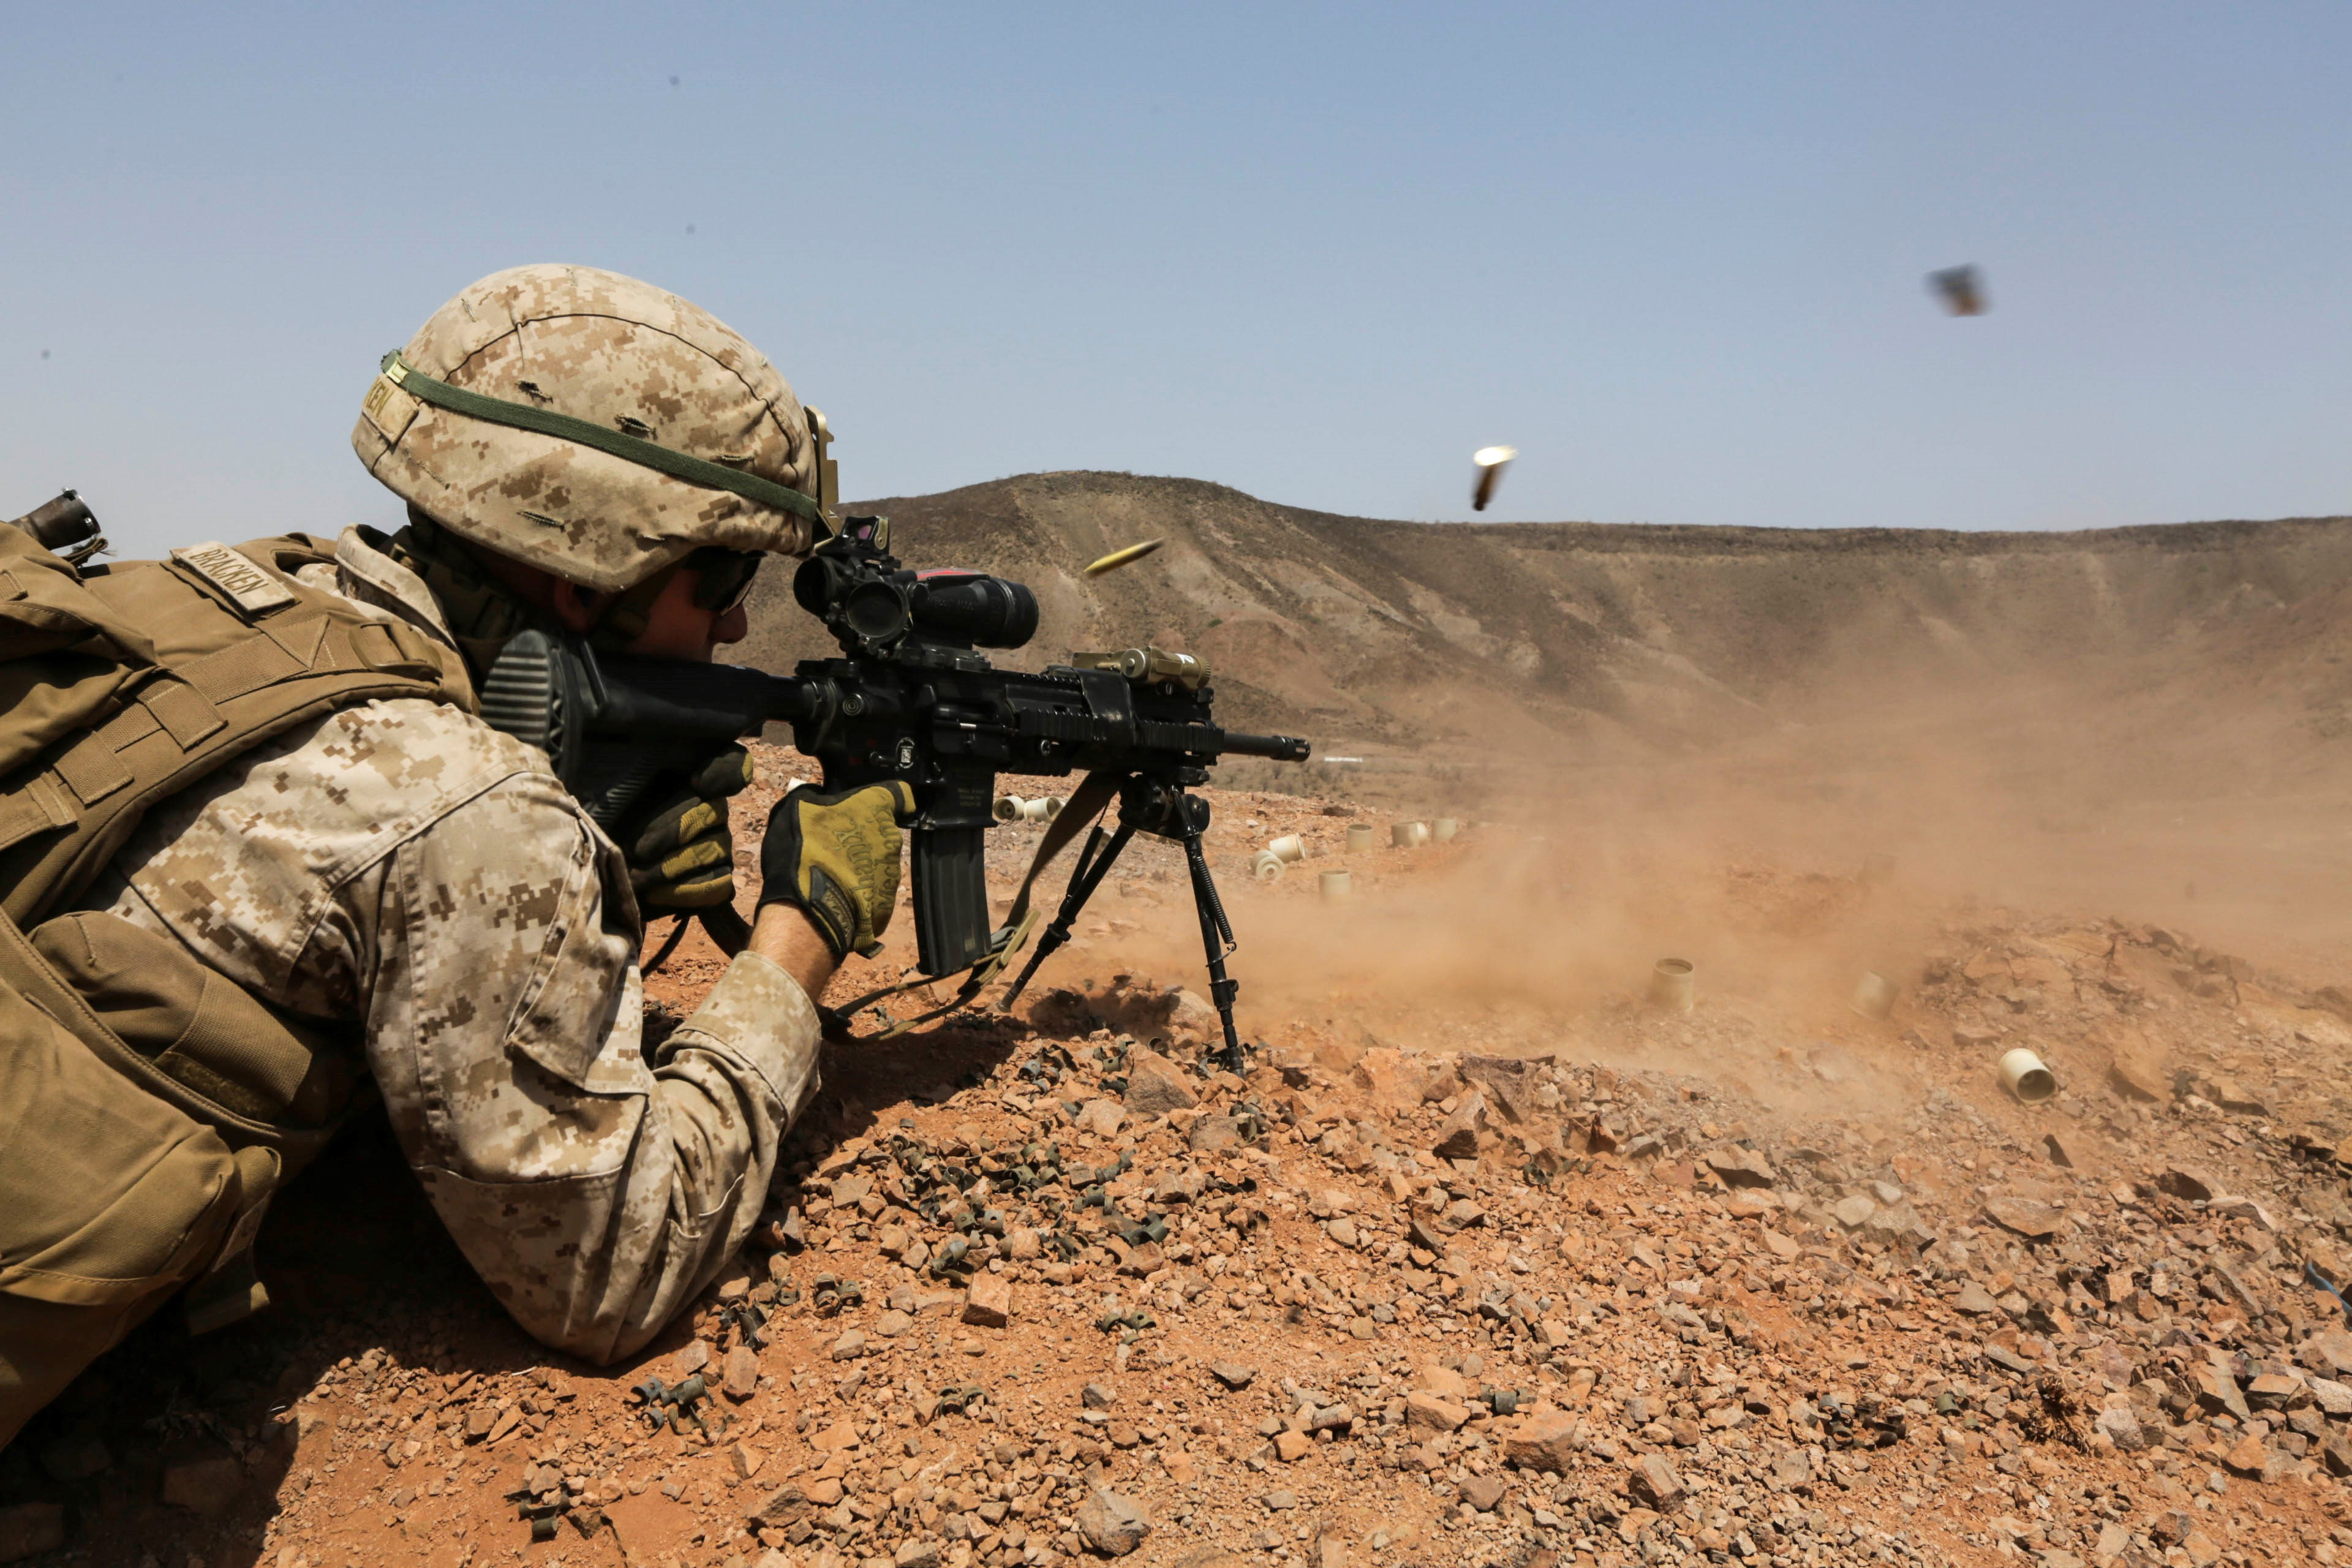 ARTA BEACH, Djibouti (July 22, 2015) A U.S. Marine with Battalion Landing Team 3rd Battalion, 1st Marine Regiment, 15th Marine Expeditionary Unit, fires an infantry automatic rifle during a squad-attack exercise.  The Marines of BLT 3/1 executed a series of attack and maneuver drills consisting of, machine gun, squad and night attacks.  Elements of the 15th Marine Expeditionary Unit are ashore in Djibouti for sustainment training to maintain and enhance the skills they developed during their pre-deployment training period.  The 15th MEU is currently deployed in support of maritime security operations and theater security cooperation efforts in the U.S. 5th and 6th Fleet areas of operation. (U.S. Marine Corps photo by Sgt. Jamean Berry/Released)